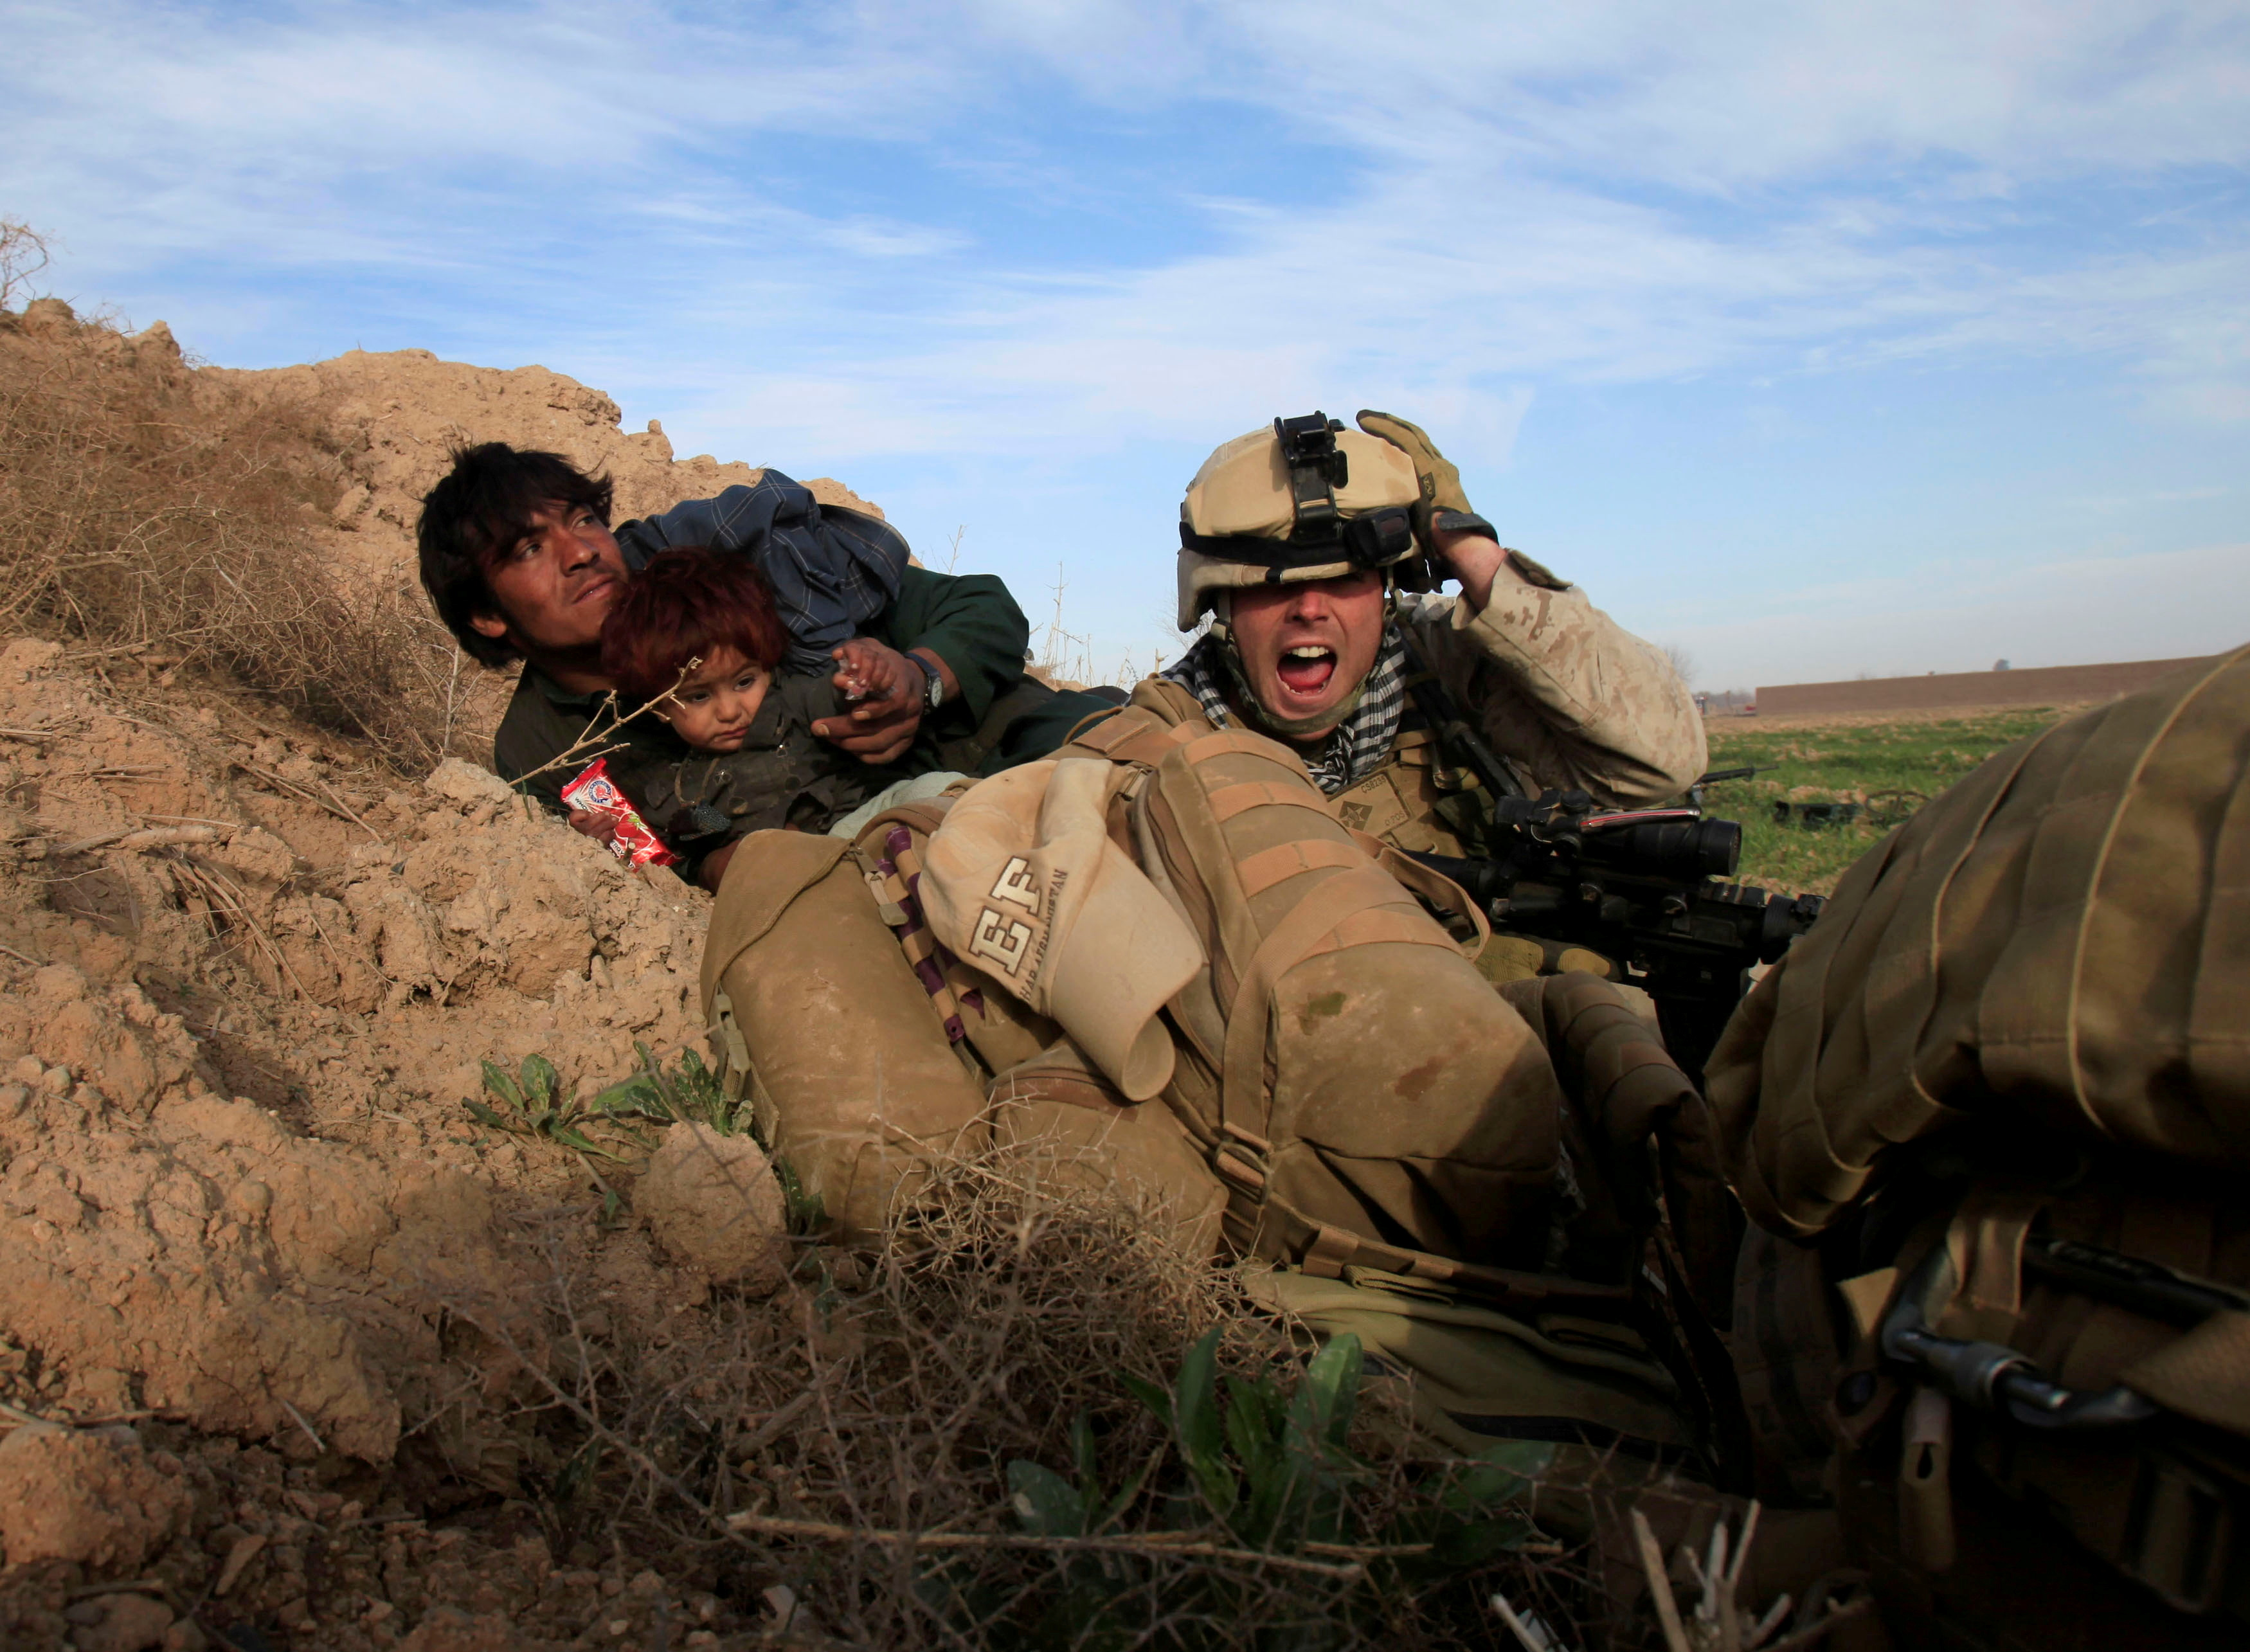 U.S. Marine Lance Corporal Chris Sanderson, from Flemington, New Jersey shouts as he tries to protect an Afghan man and his child after Taliban fighters opened fire in the town of Marjah, in Nad Ali district, Helmand province, Afghanistan, February 13, 2010.   REUTERS/Goran Tomasevic/File Photo